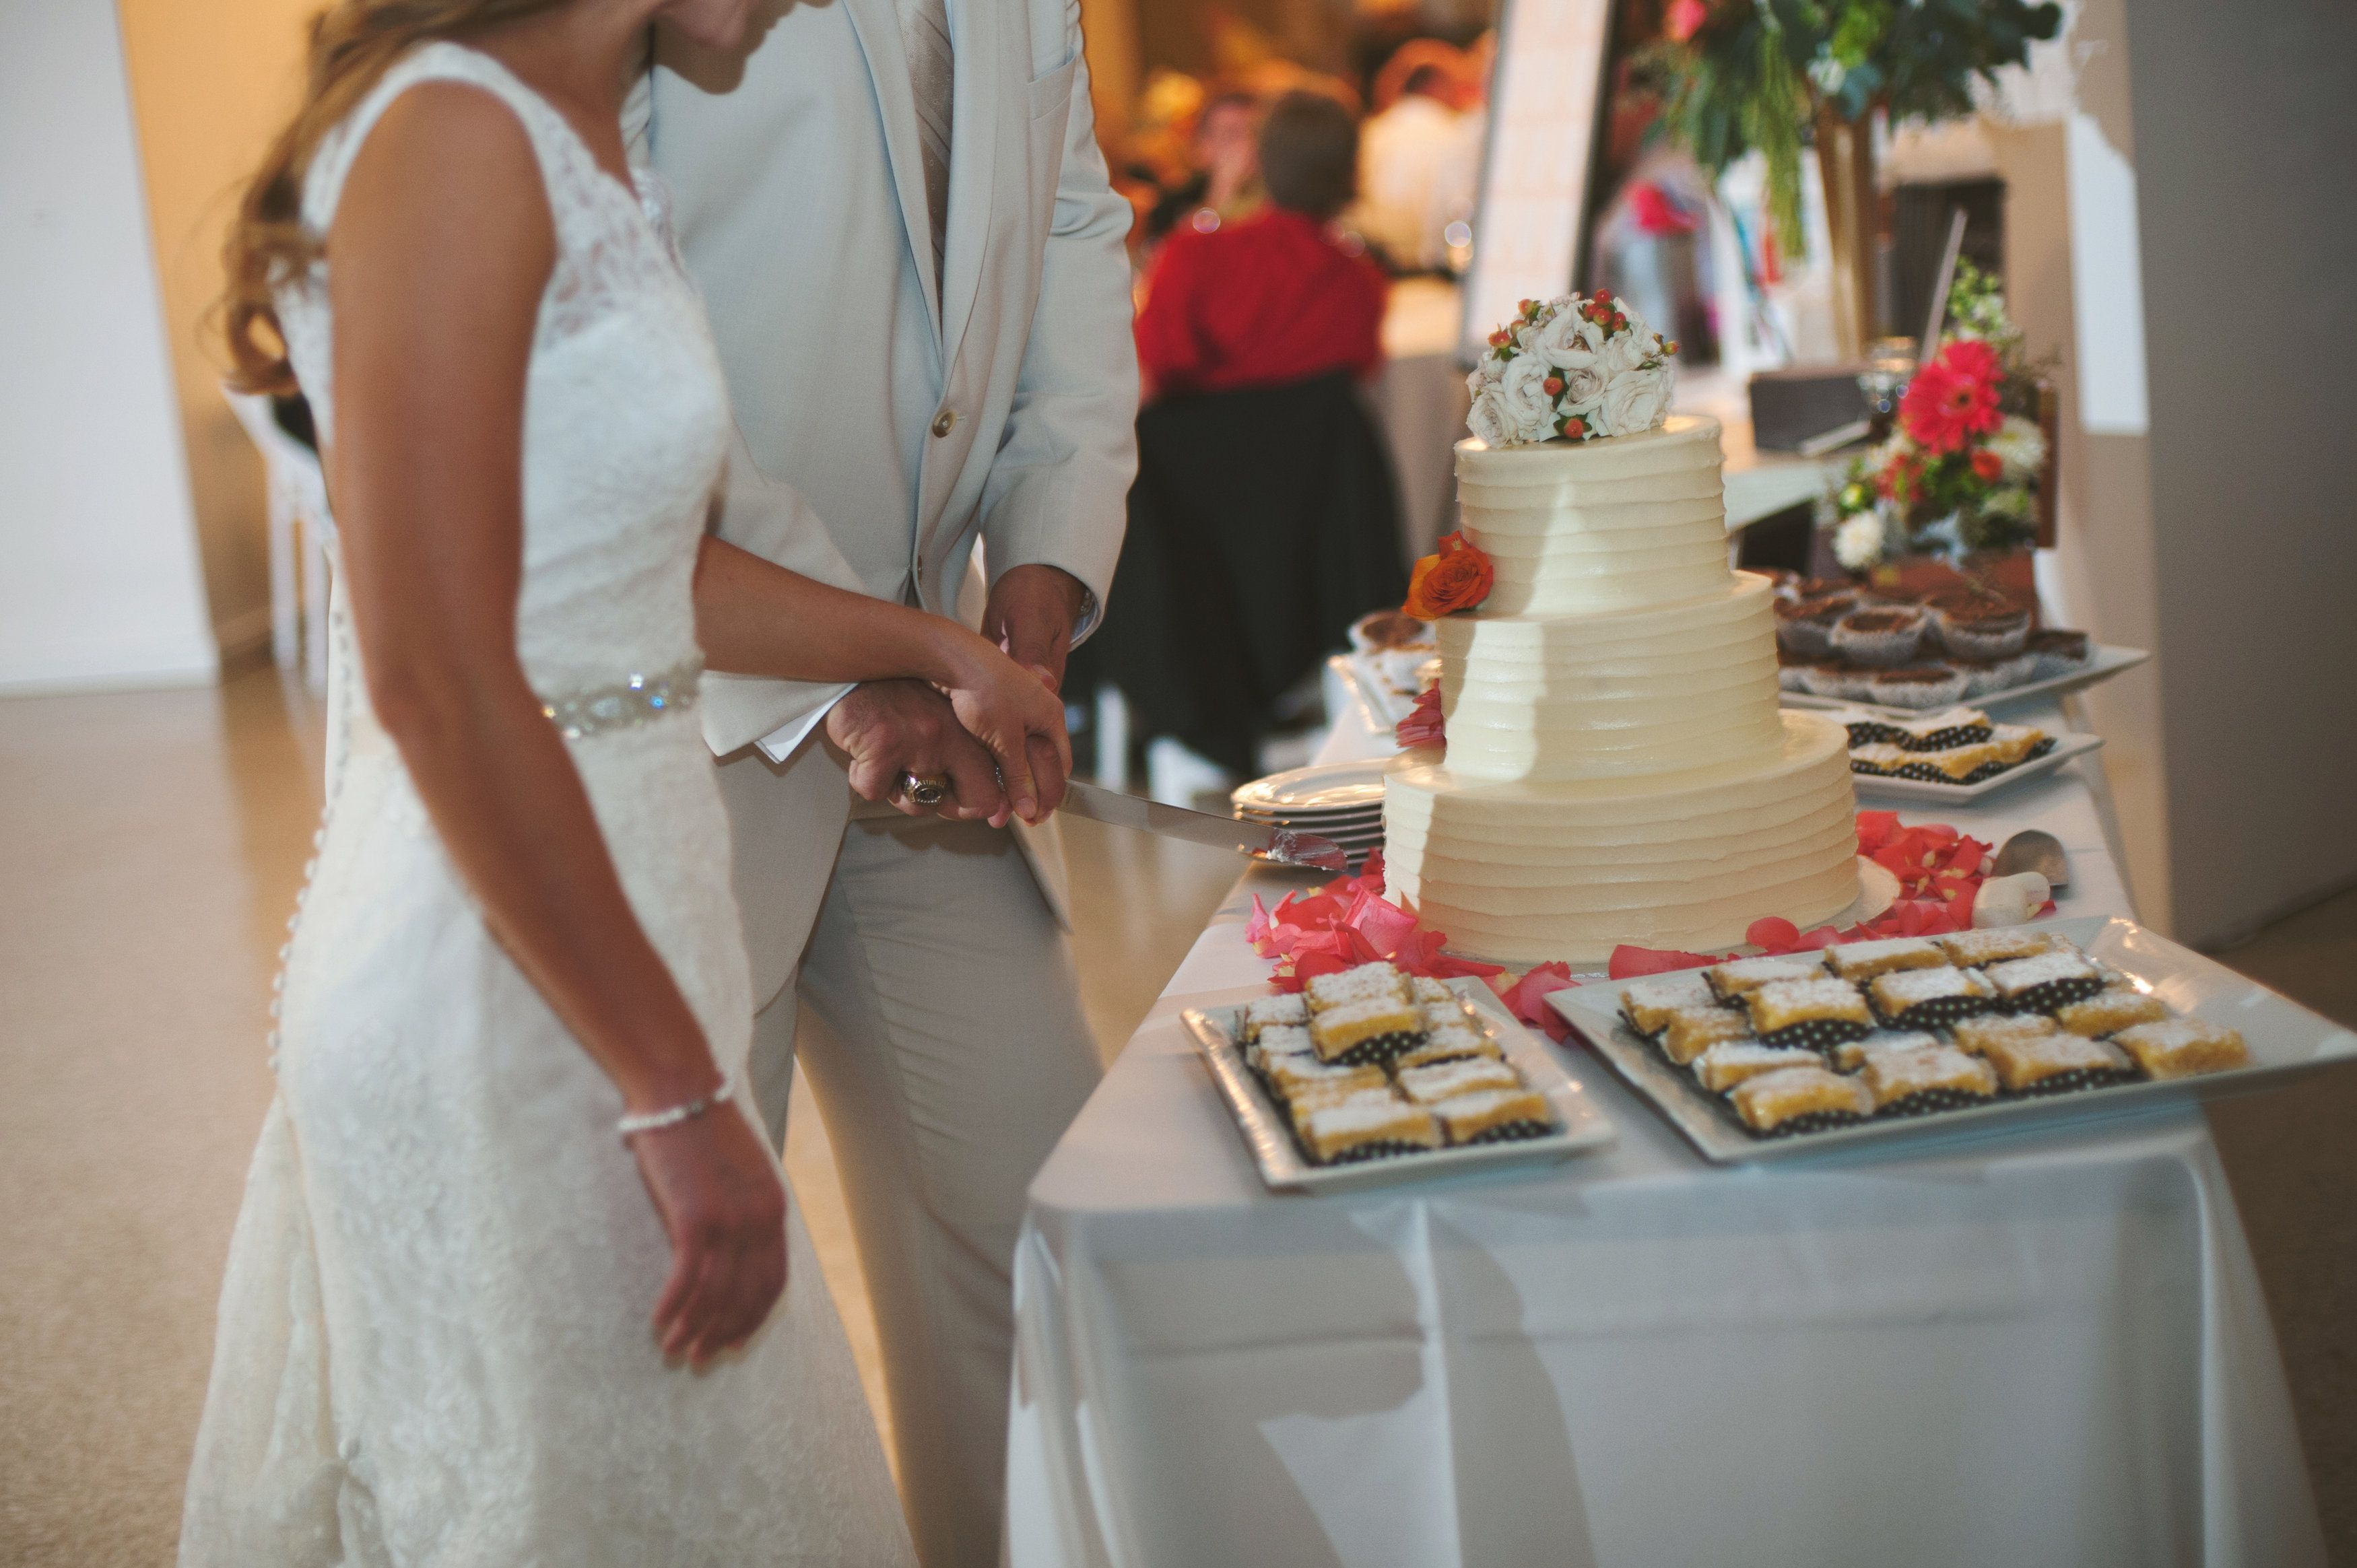 Choose Your Own Catering And Bar Service To Make Your Reception Even Sweeter Photography Cincinnati Wedding Photographers Cincinnati Weddings Polaroid Wedding